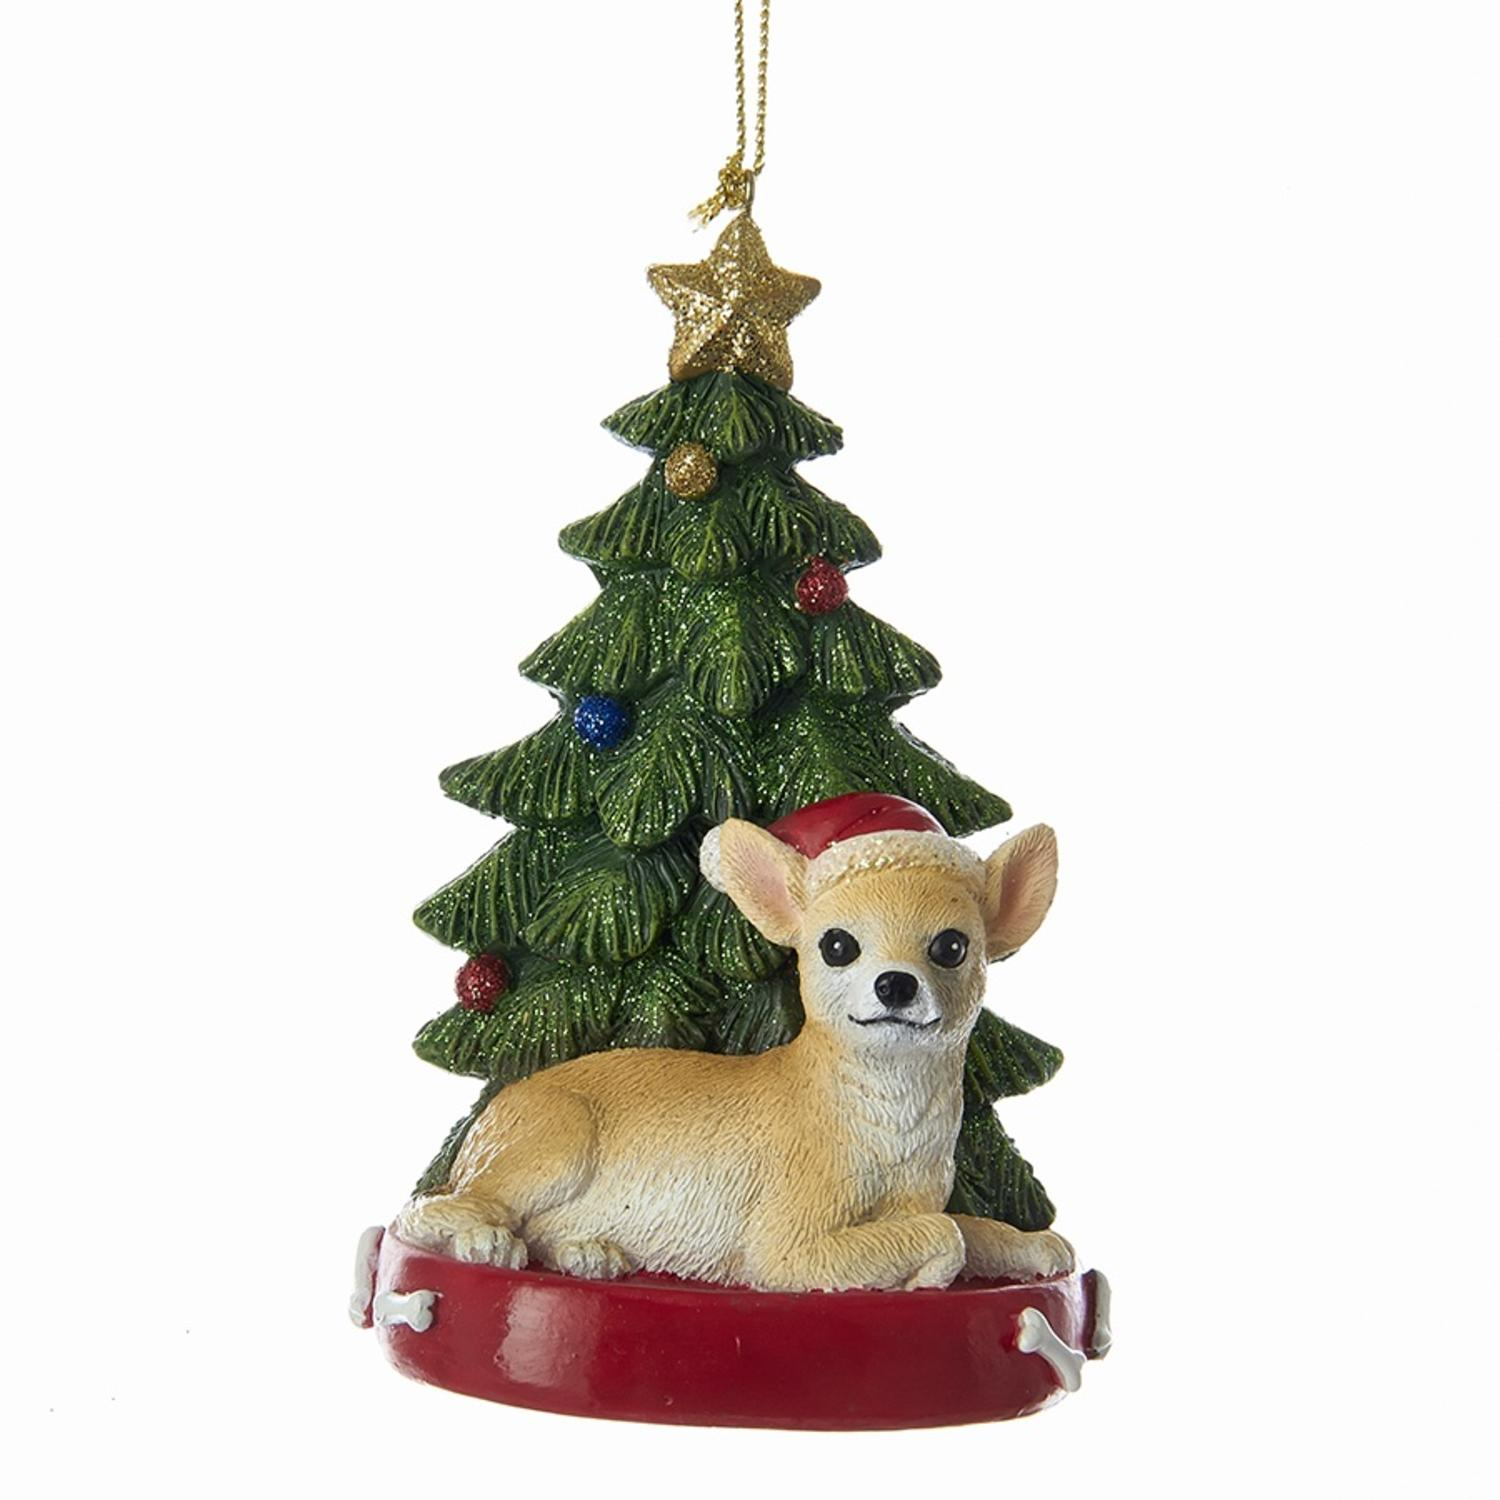 Pack of 6 Chihuahua Sitting with Glittered Tree Christmas Ornaments for Personalization 4.25""